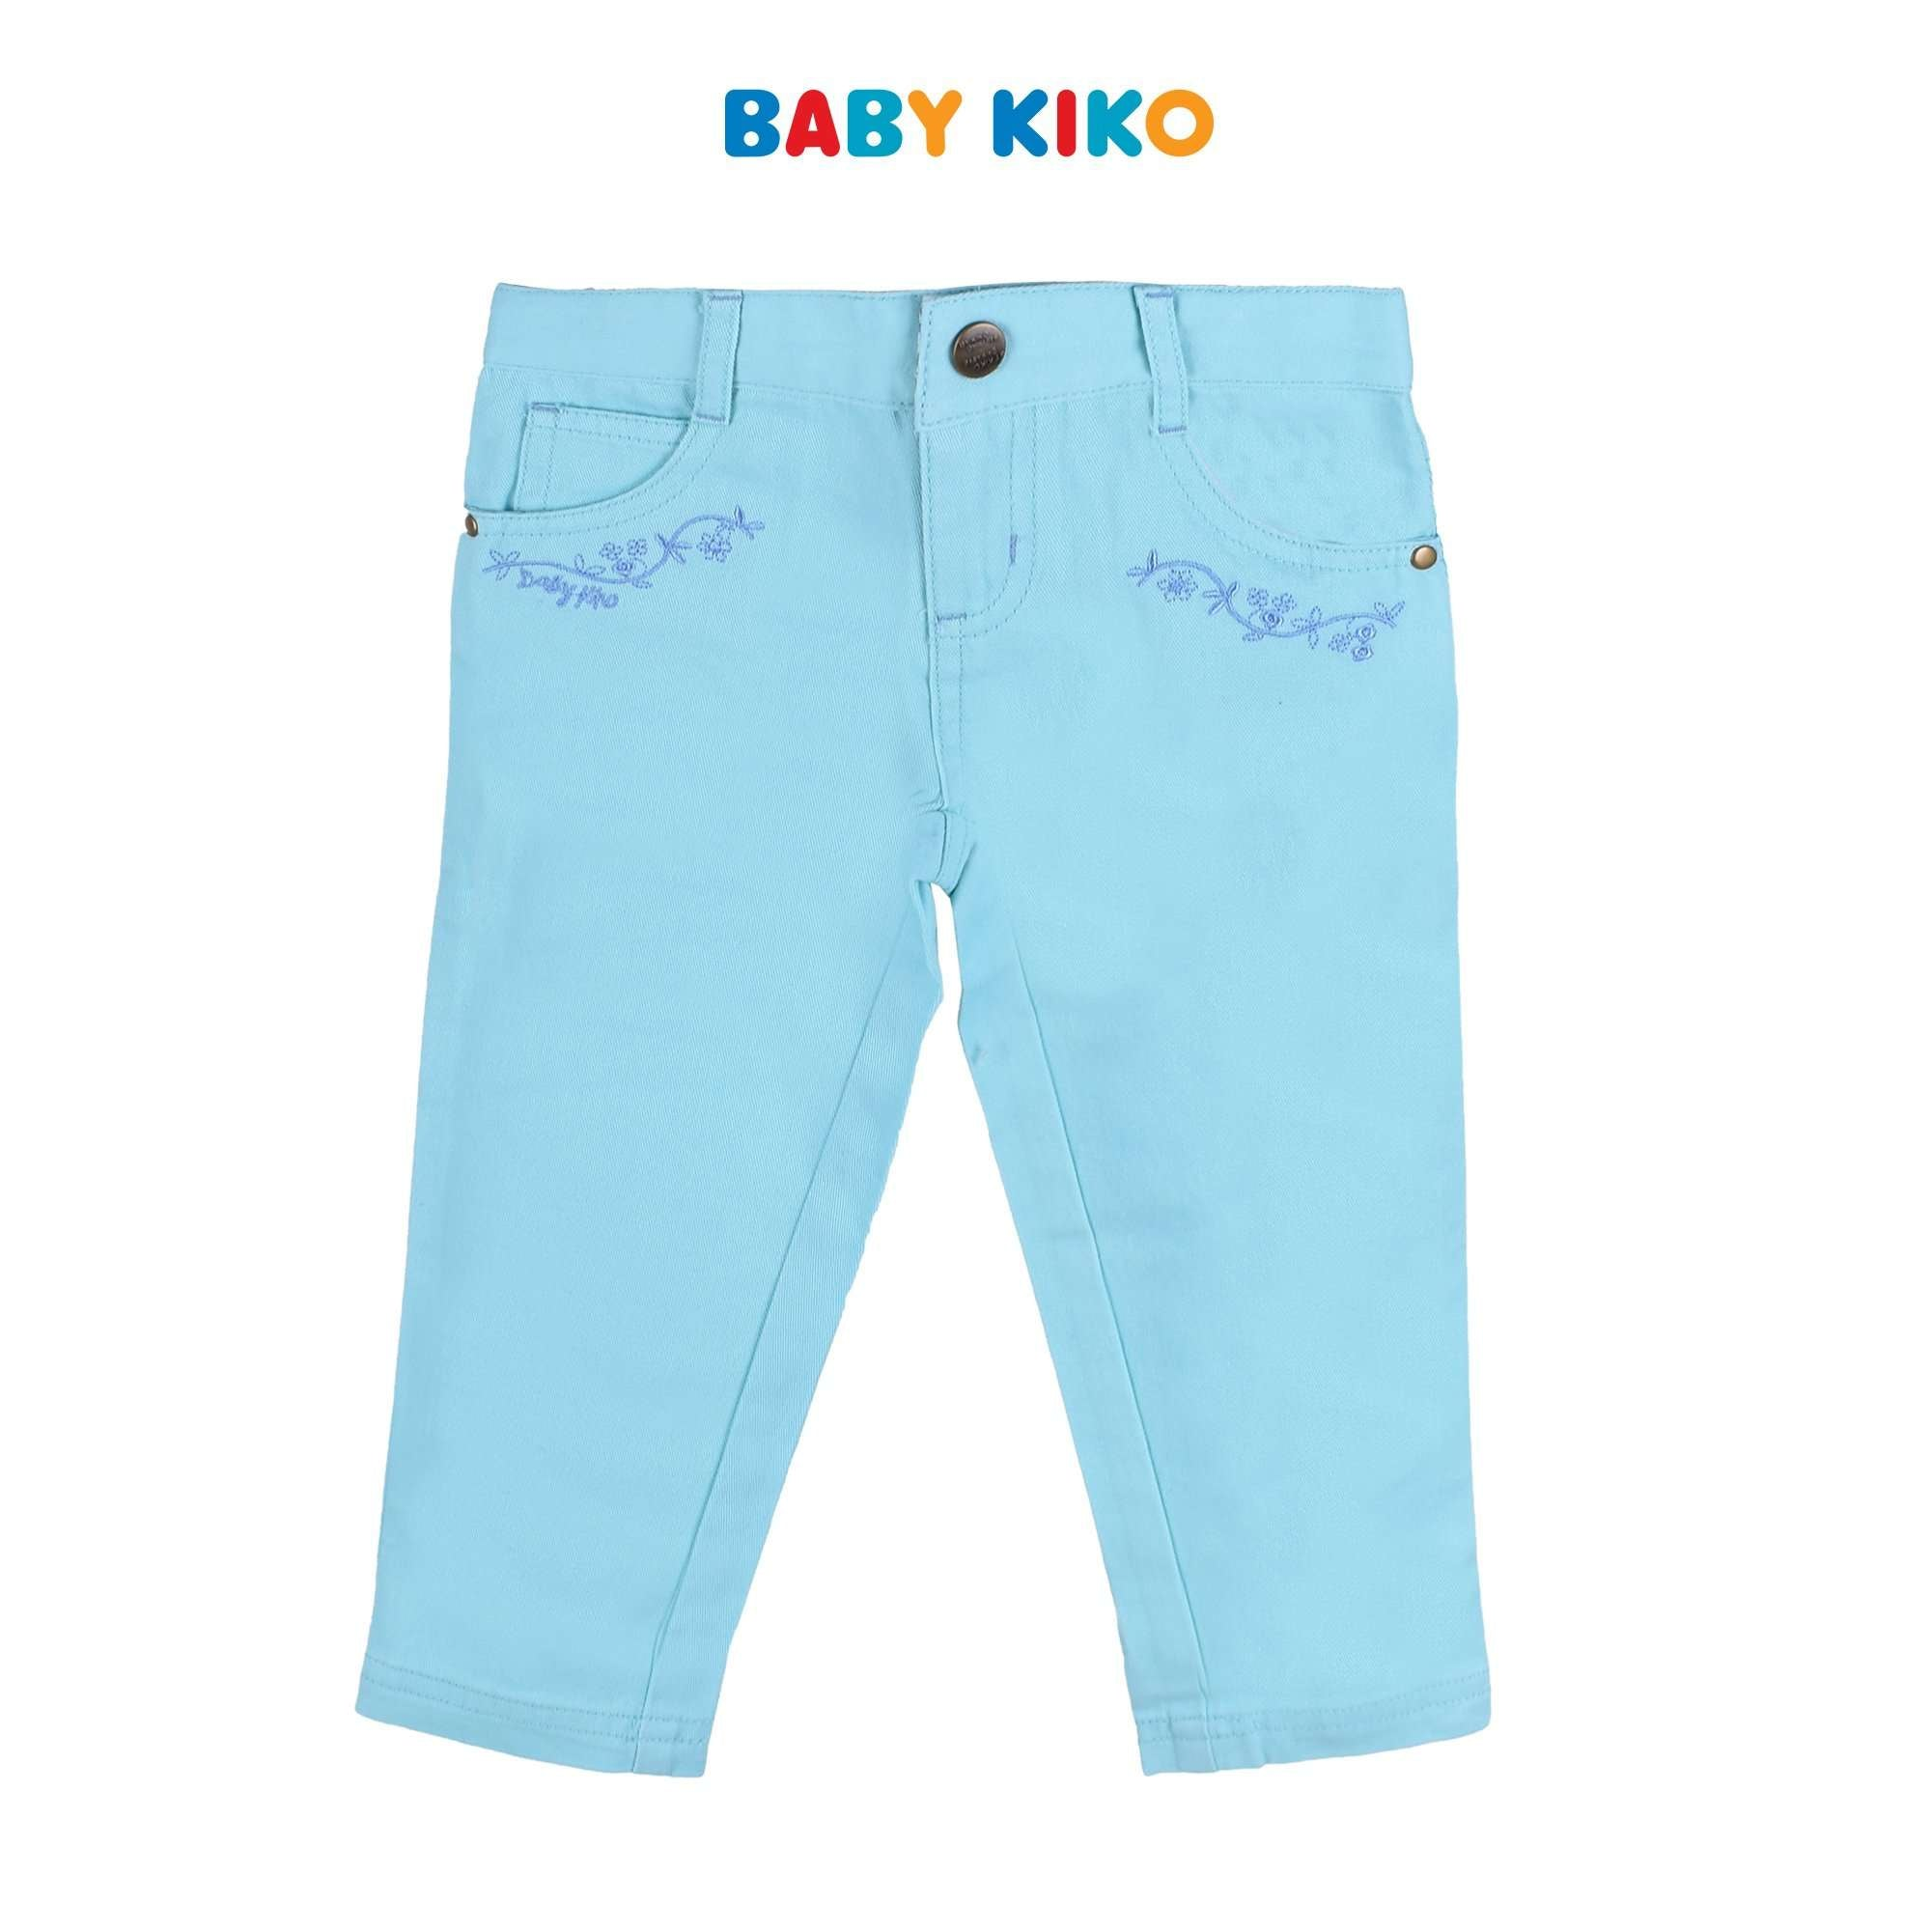 Baby KIKO Toddler Girl Long Pants Woven - Turquoise 335095-252 : Buy Baby KIKO online at CMG.MY